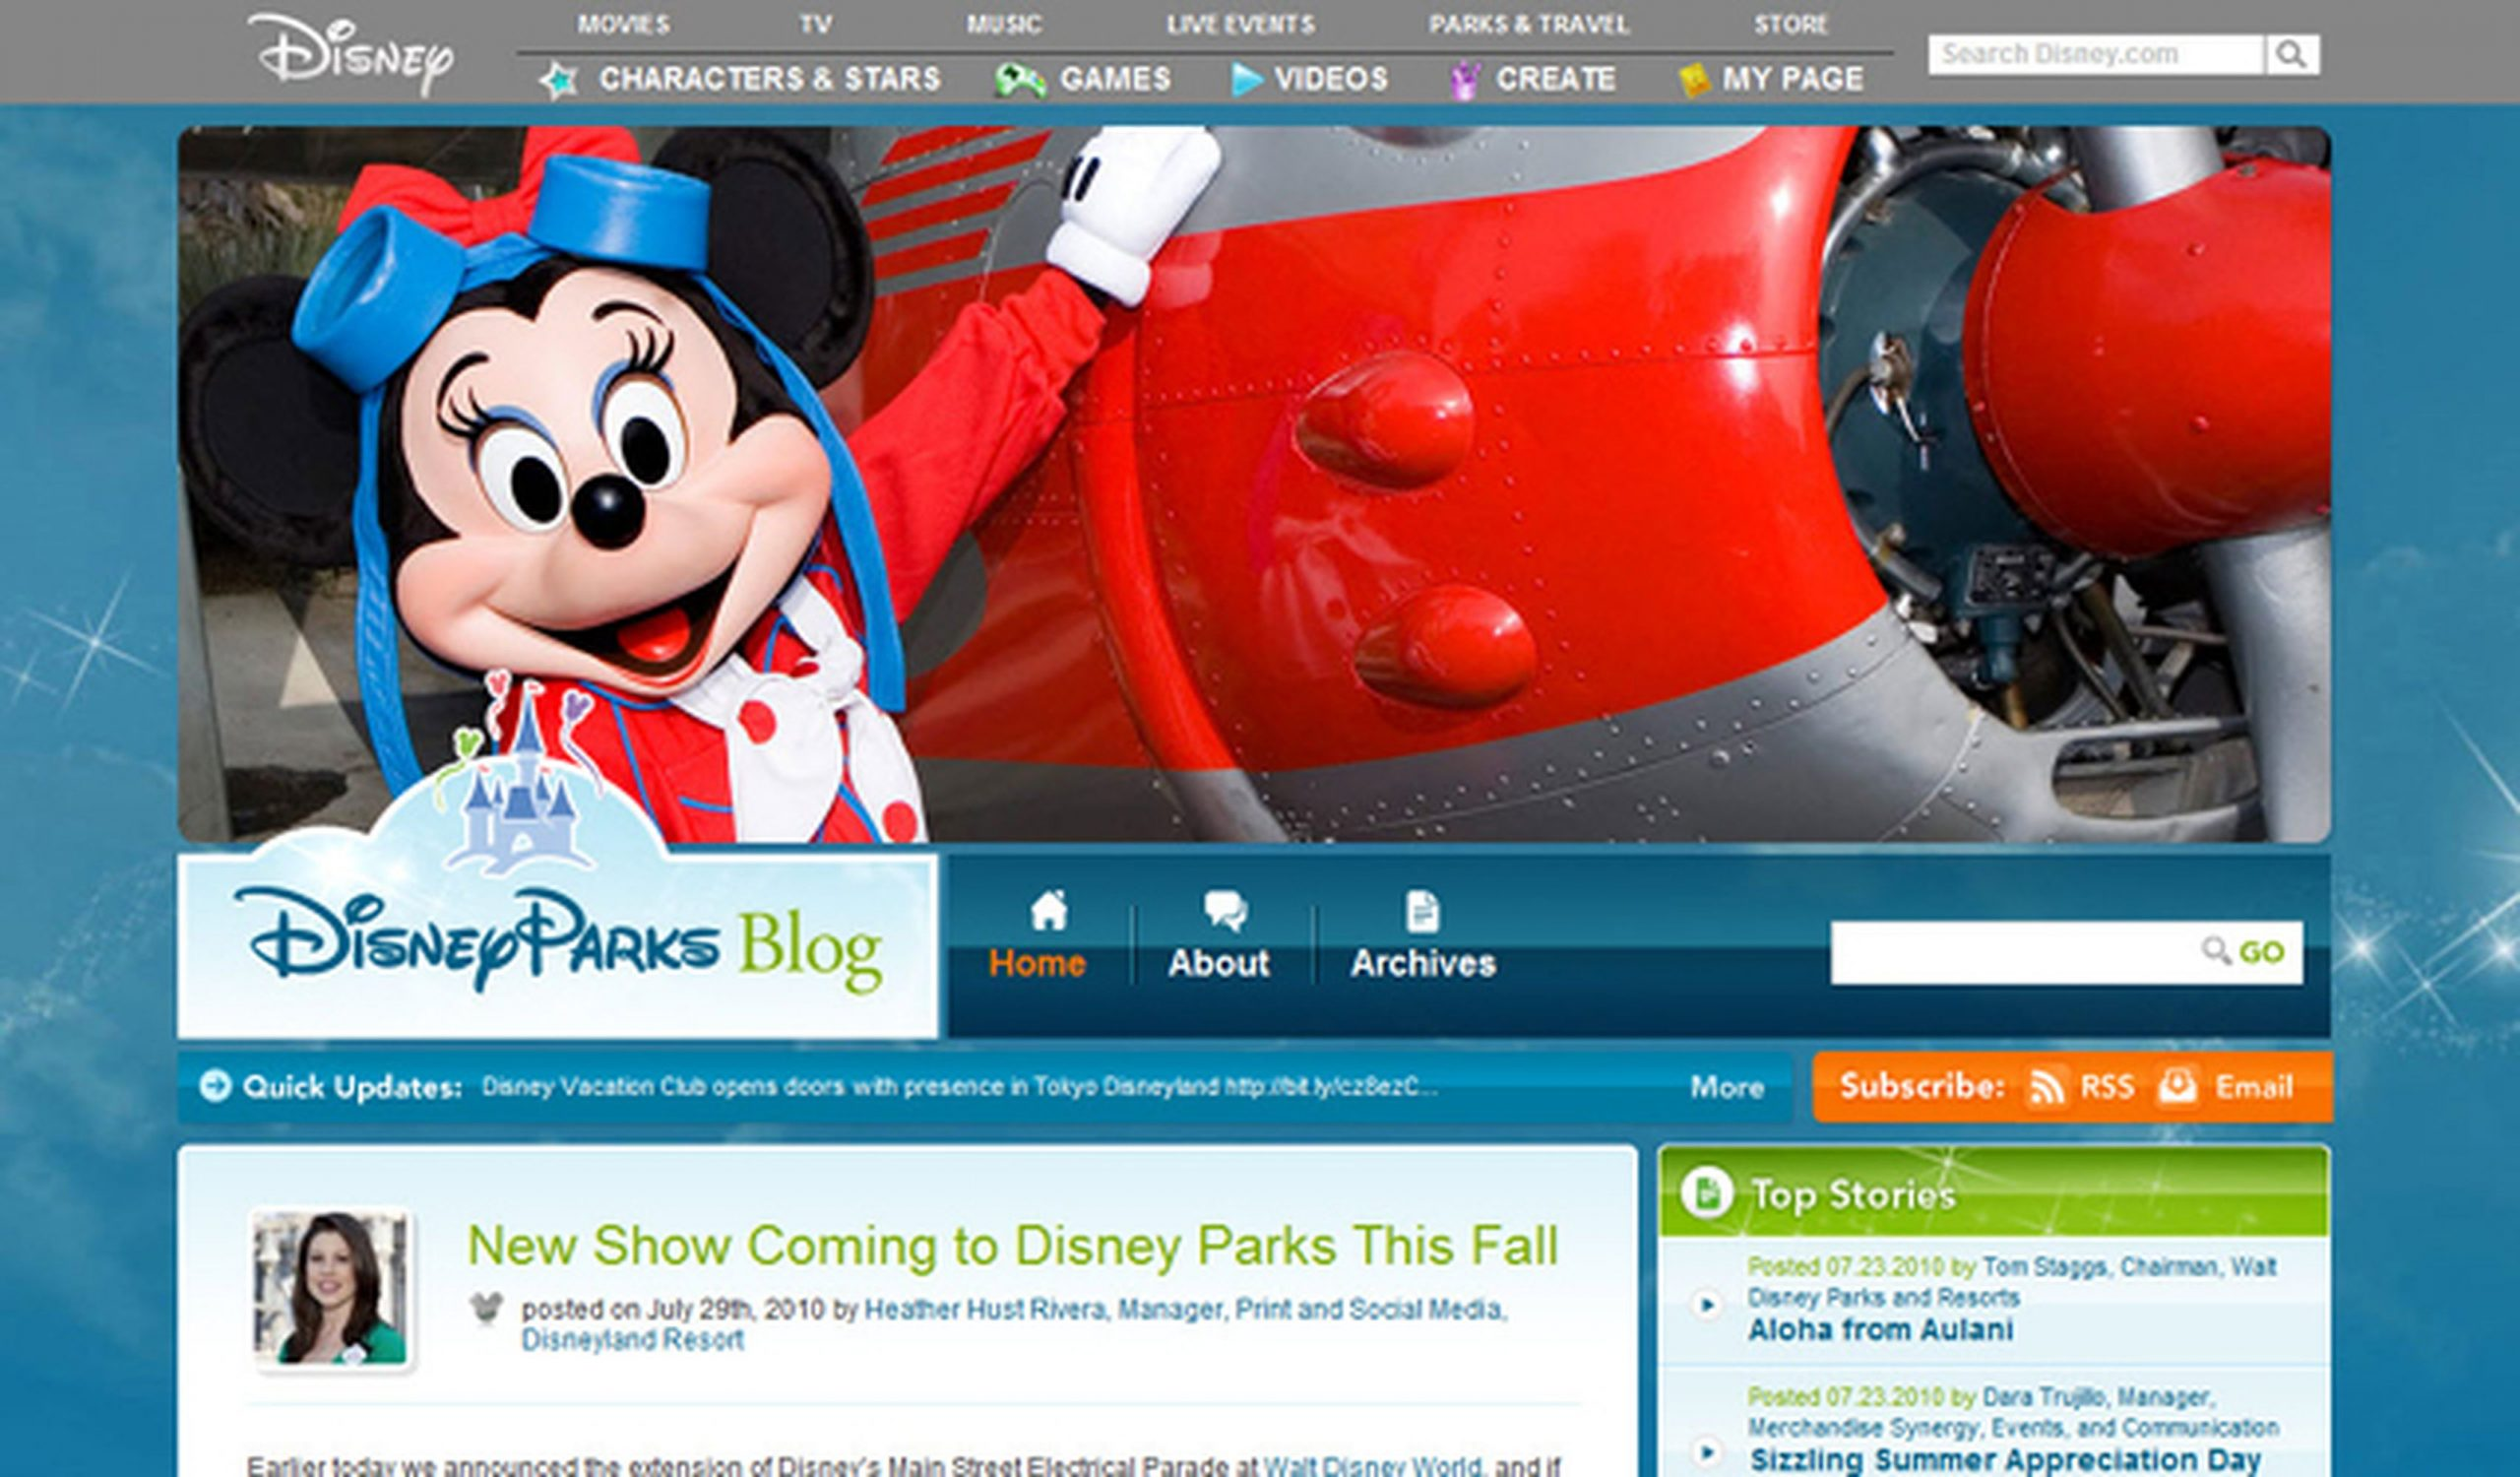 Disney Parks: Take Your Fans Behind the Scenes